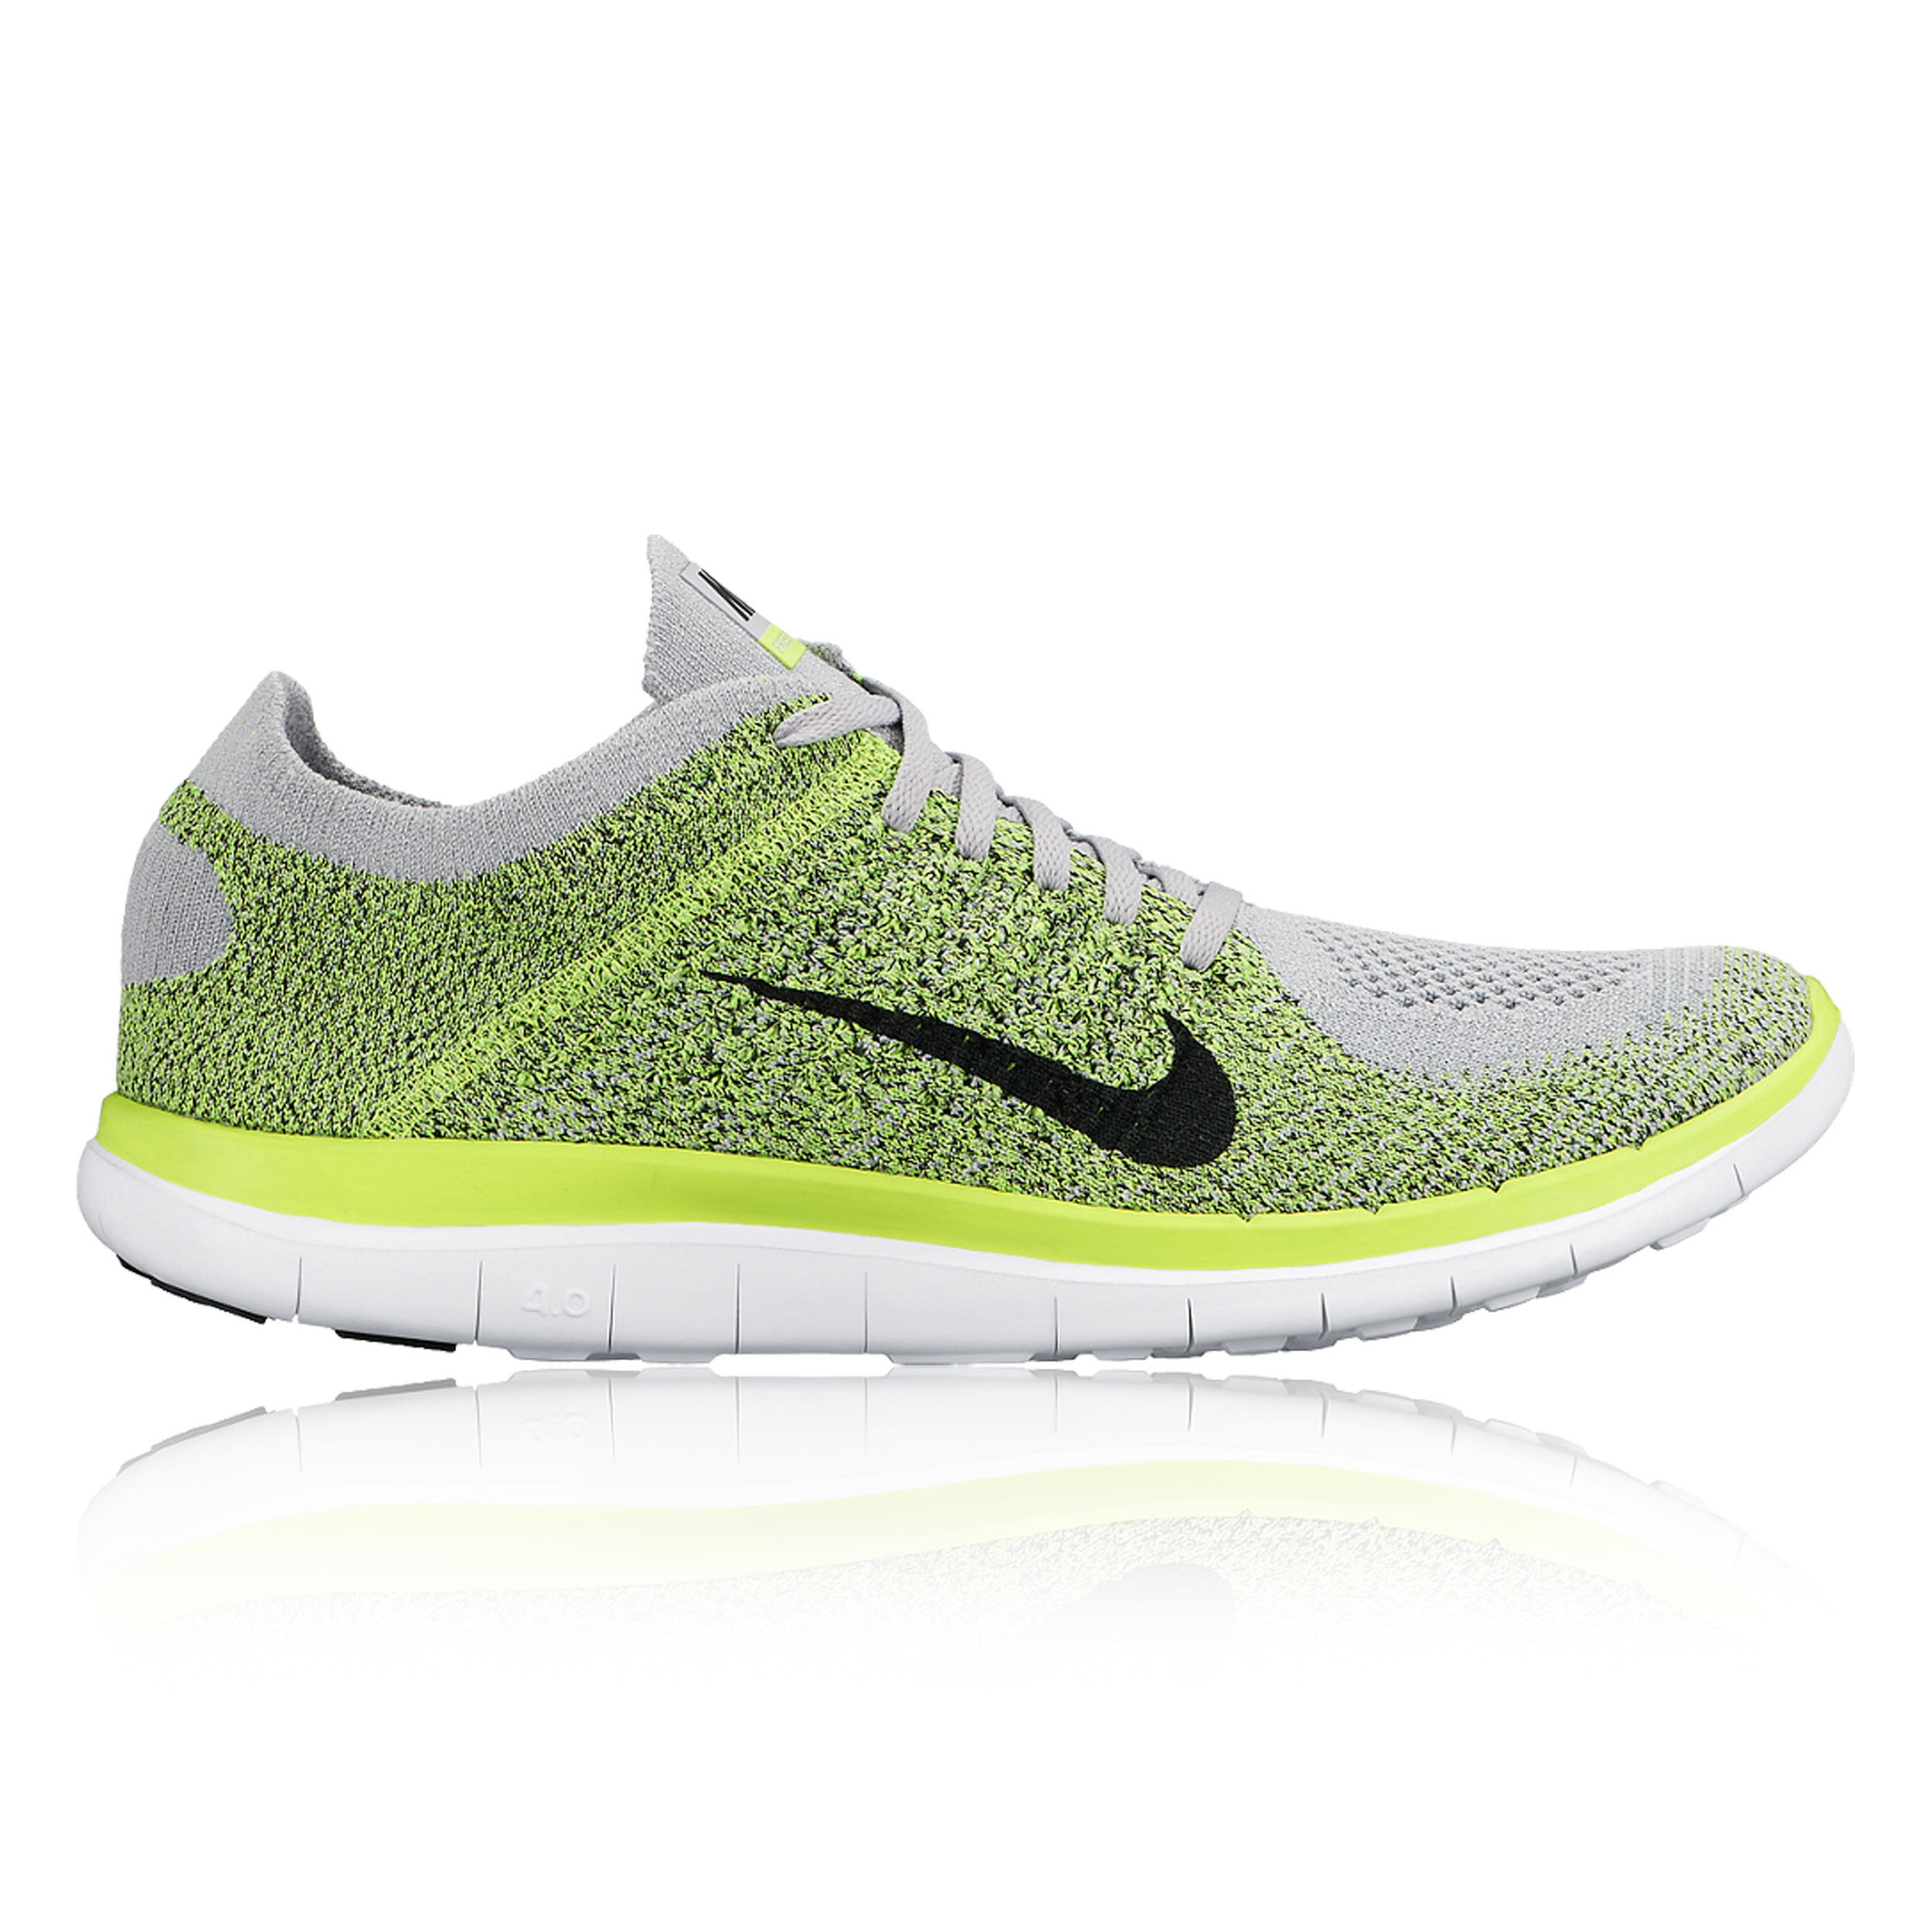 adidas Free Flyknit 4.0 Running Shoes - HO14